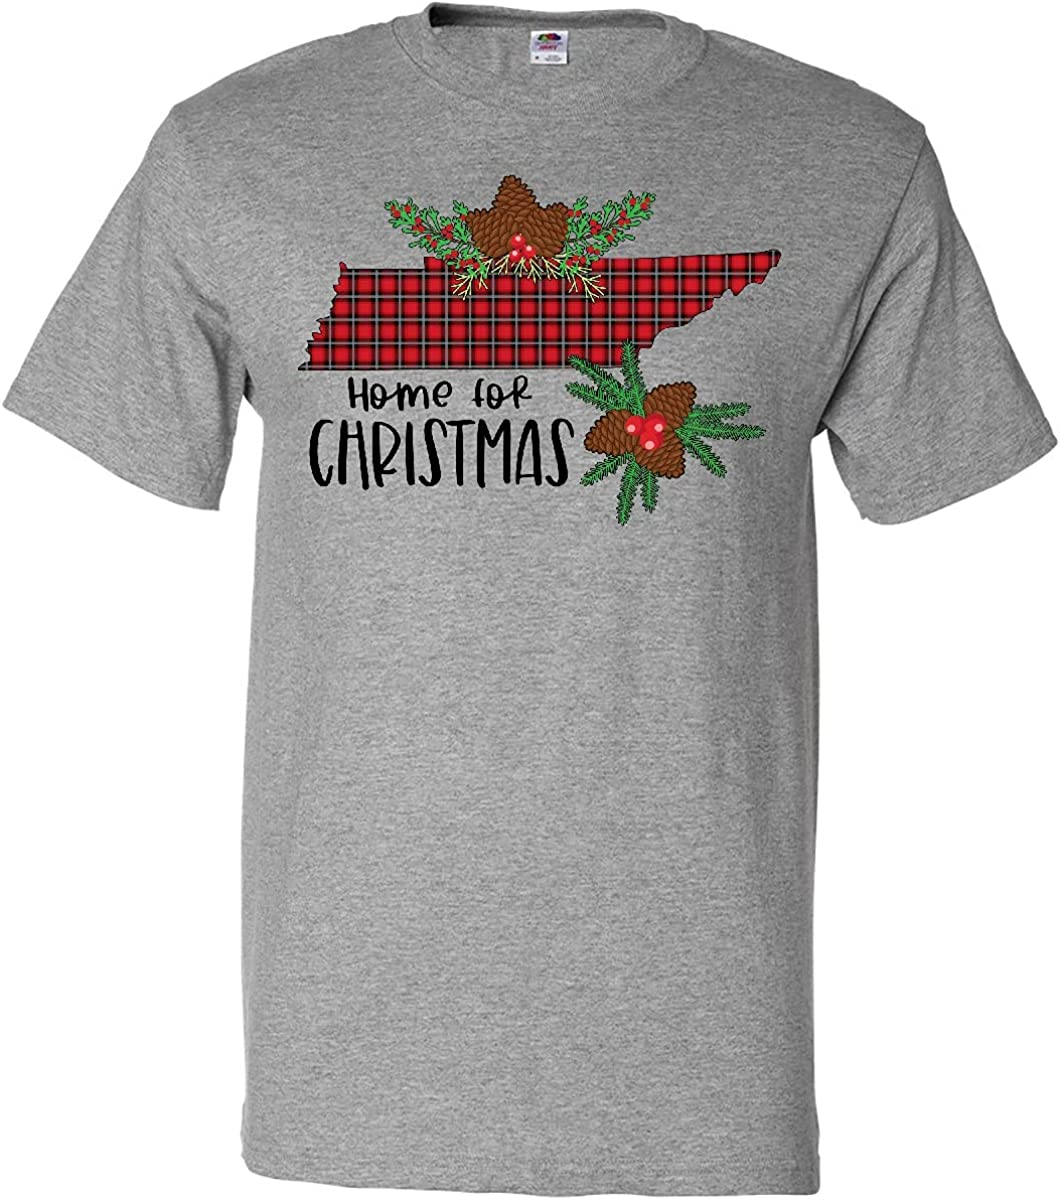 inktastic Home for Christmas Tennessee in Plaid with Holly T-Shirt